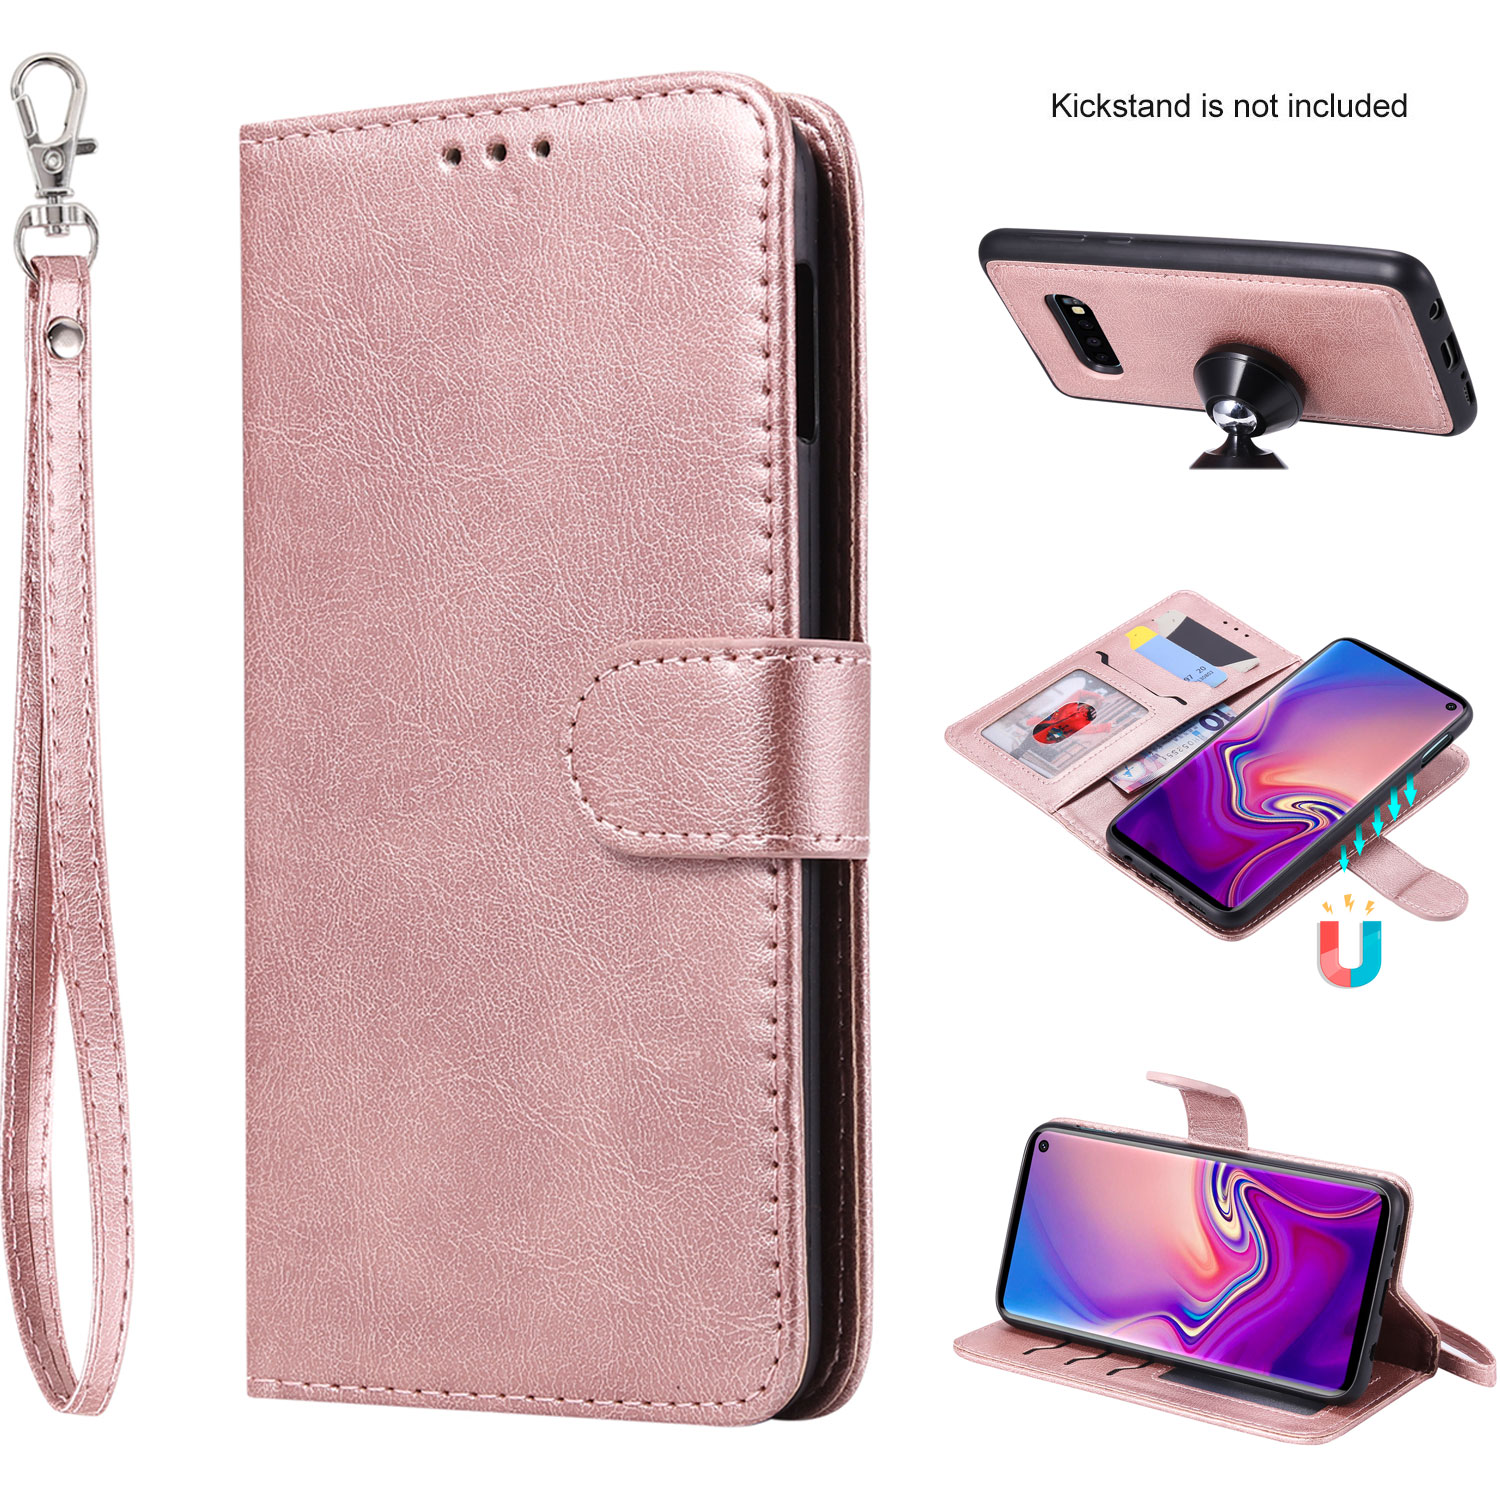 Card Holders Extra-Protective Kickstand Leather Cover Wallet for Samsung Galaxy S10e Flip Case Fit for Samsung Galaxy S10e